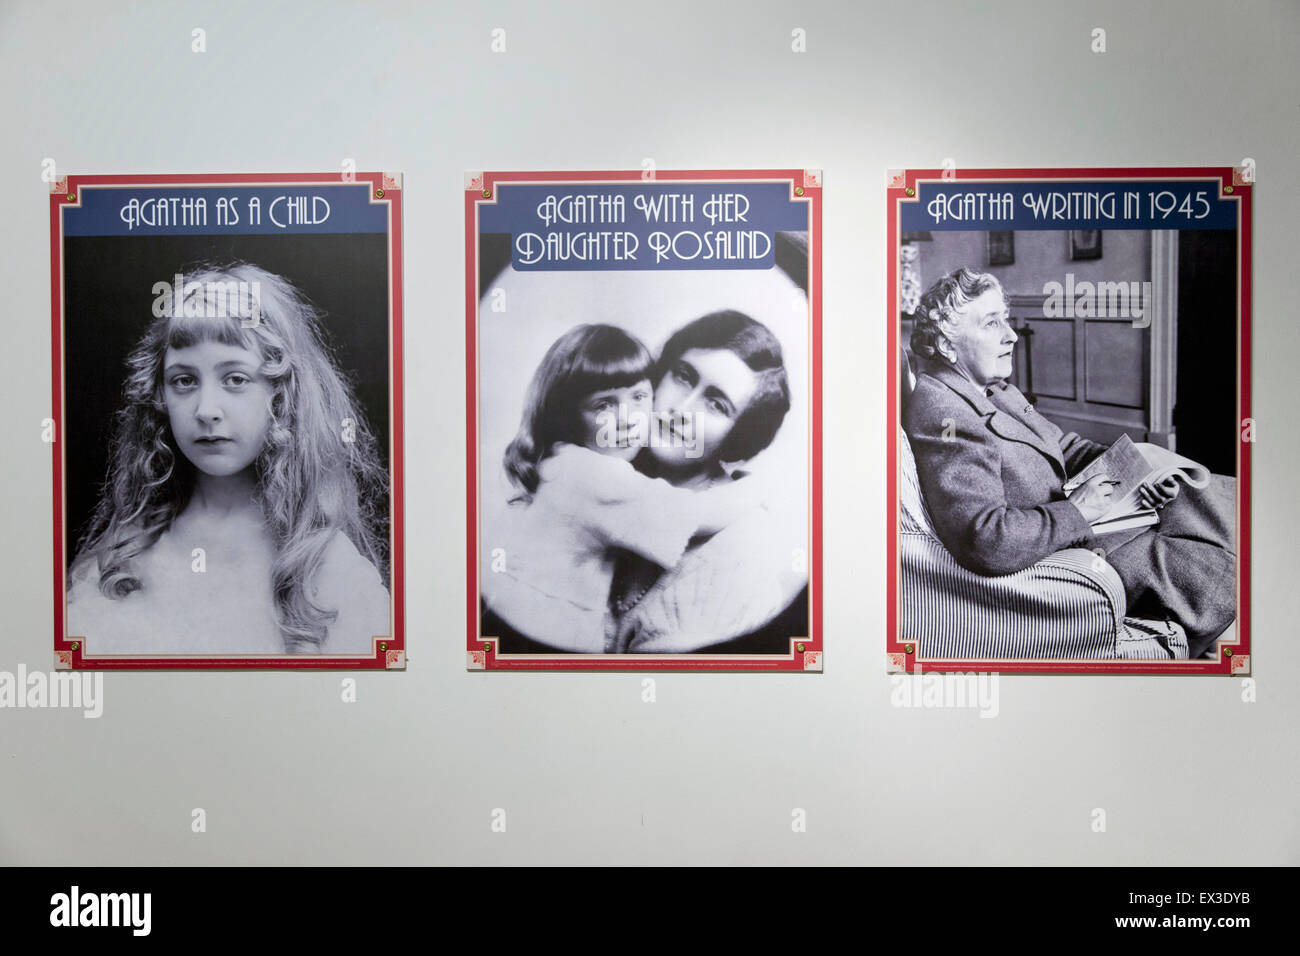 Photos of Agatha Christie in Torquay Museum, Torquay, Devon, southern England, England, United Kingdom - Stock Image